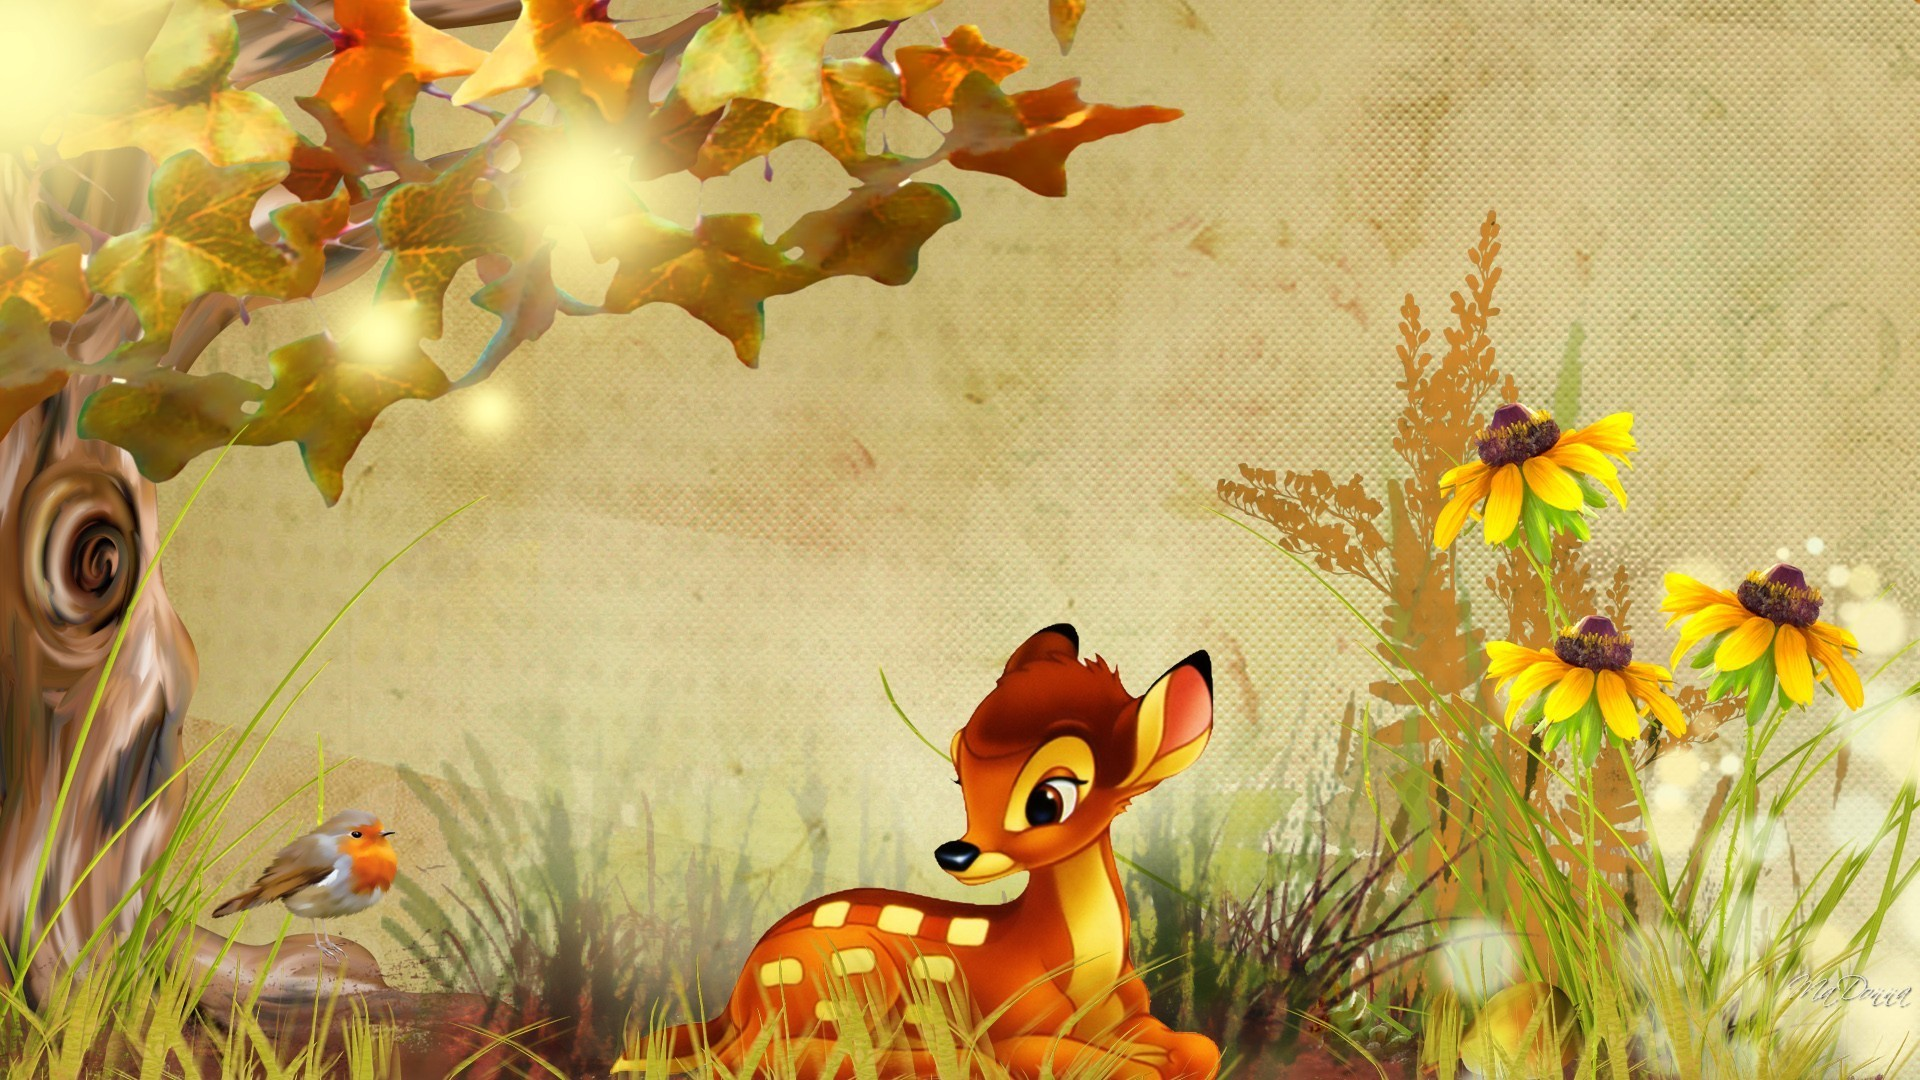 65 Disney Fall Wallpapers on WallpaperPlay 1920x1080